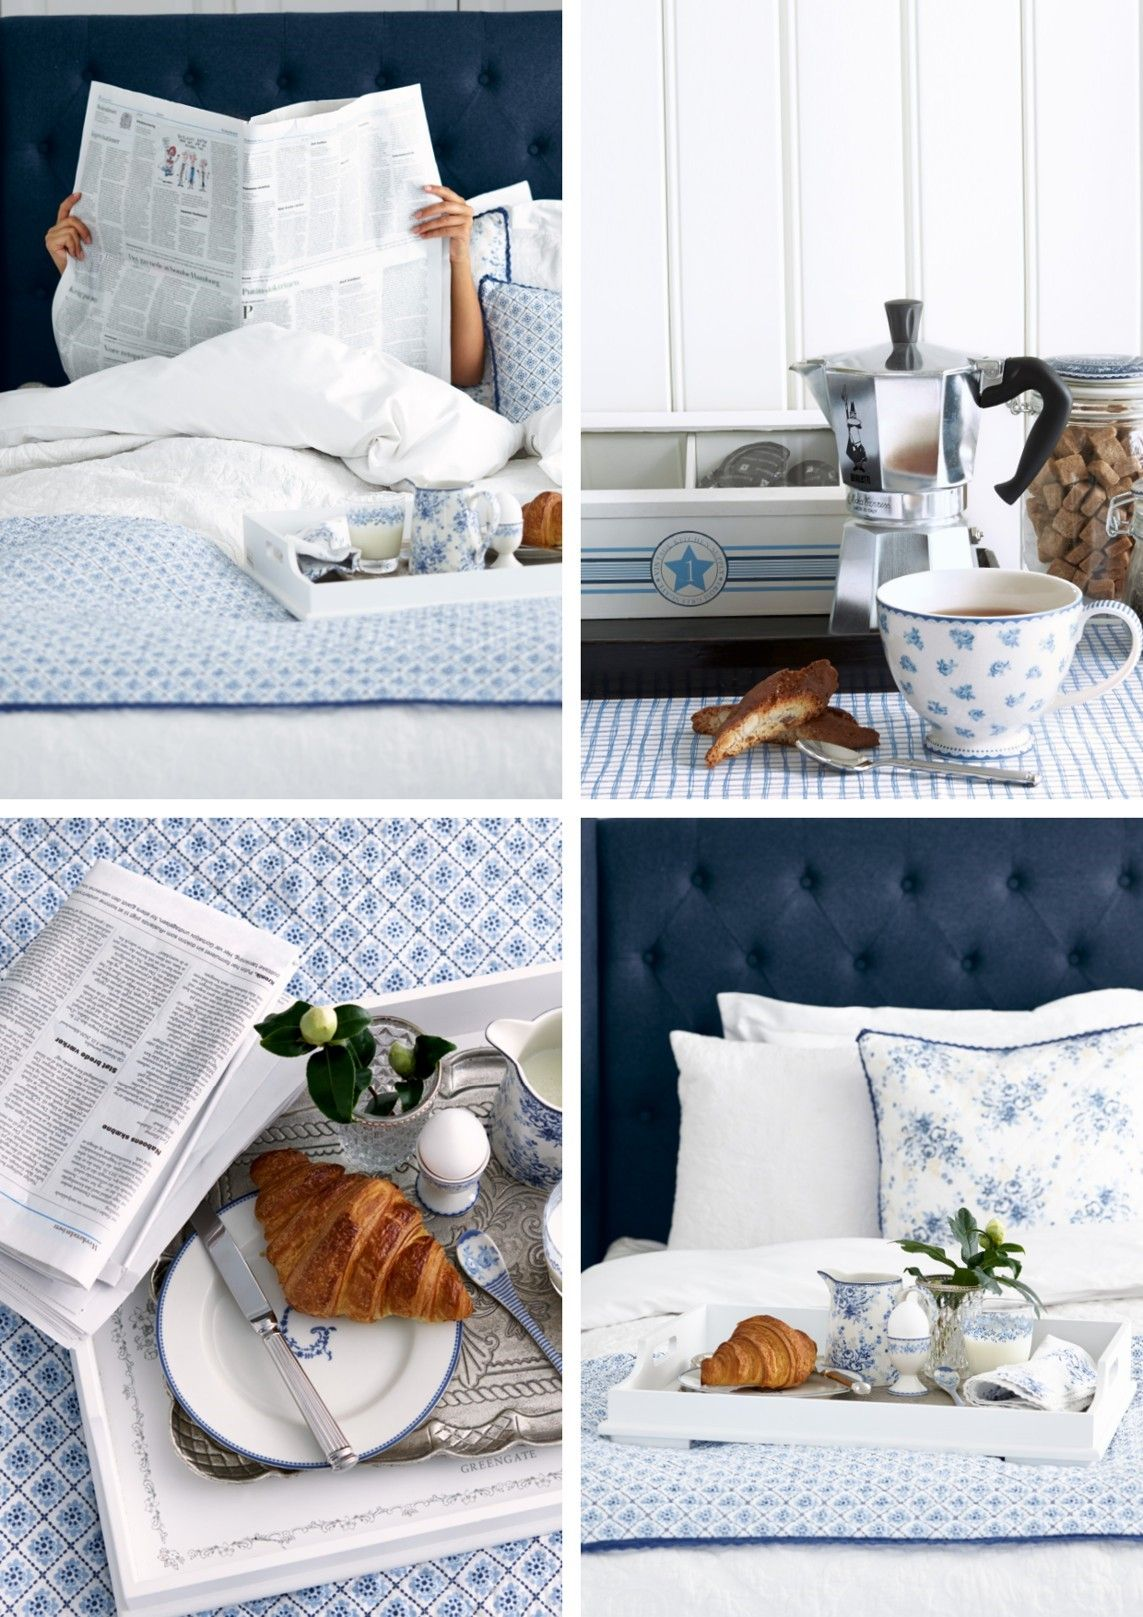 greengate europe autumn winter 2015 house pinterest 10604 | 0b74bd8edec622c10604eeaa024279fb